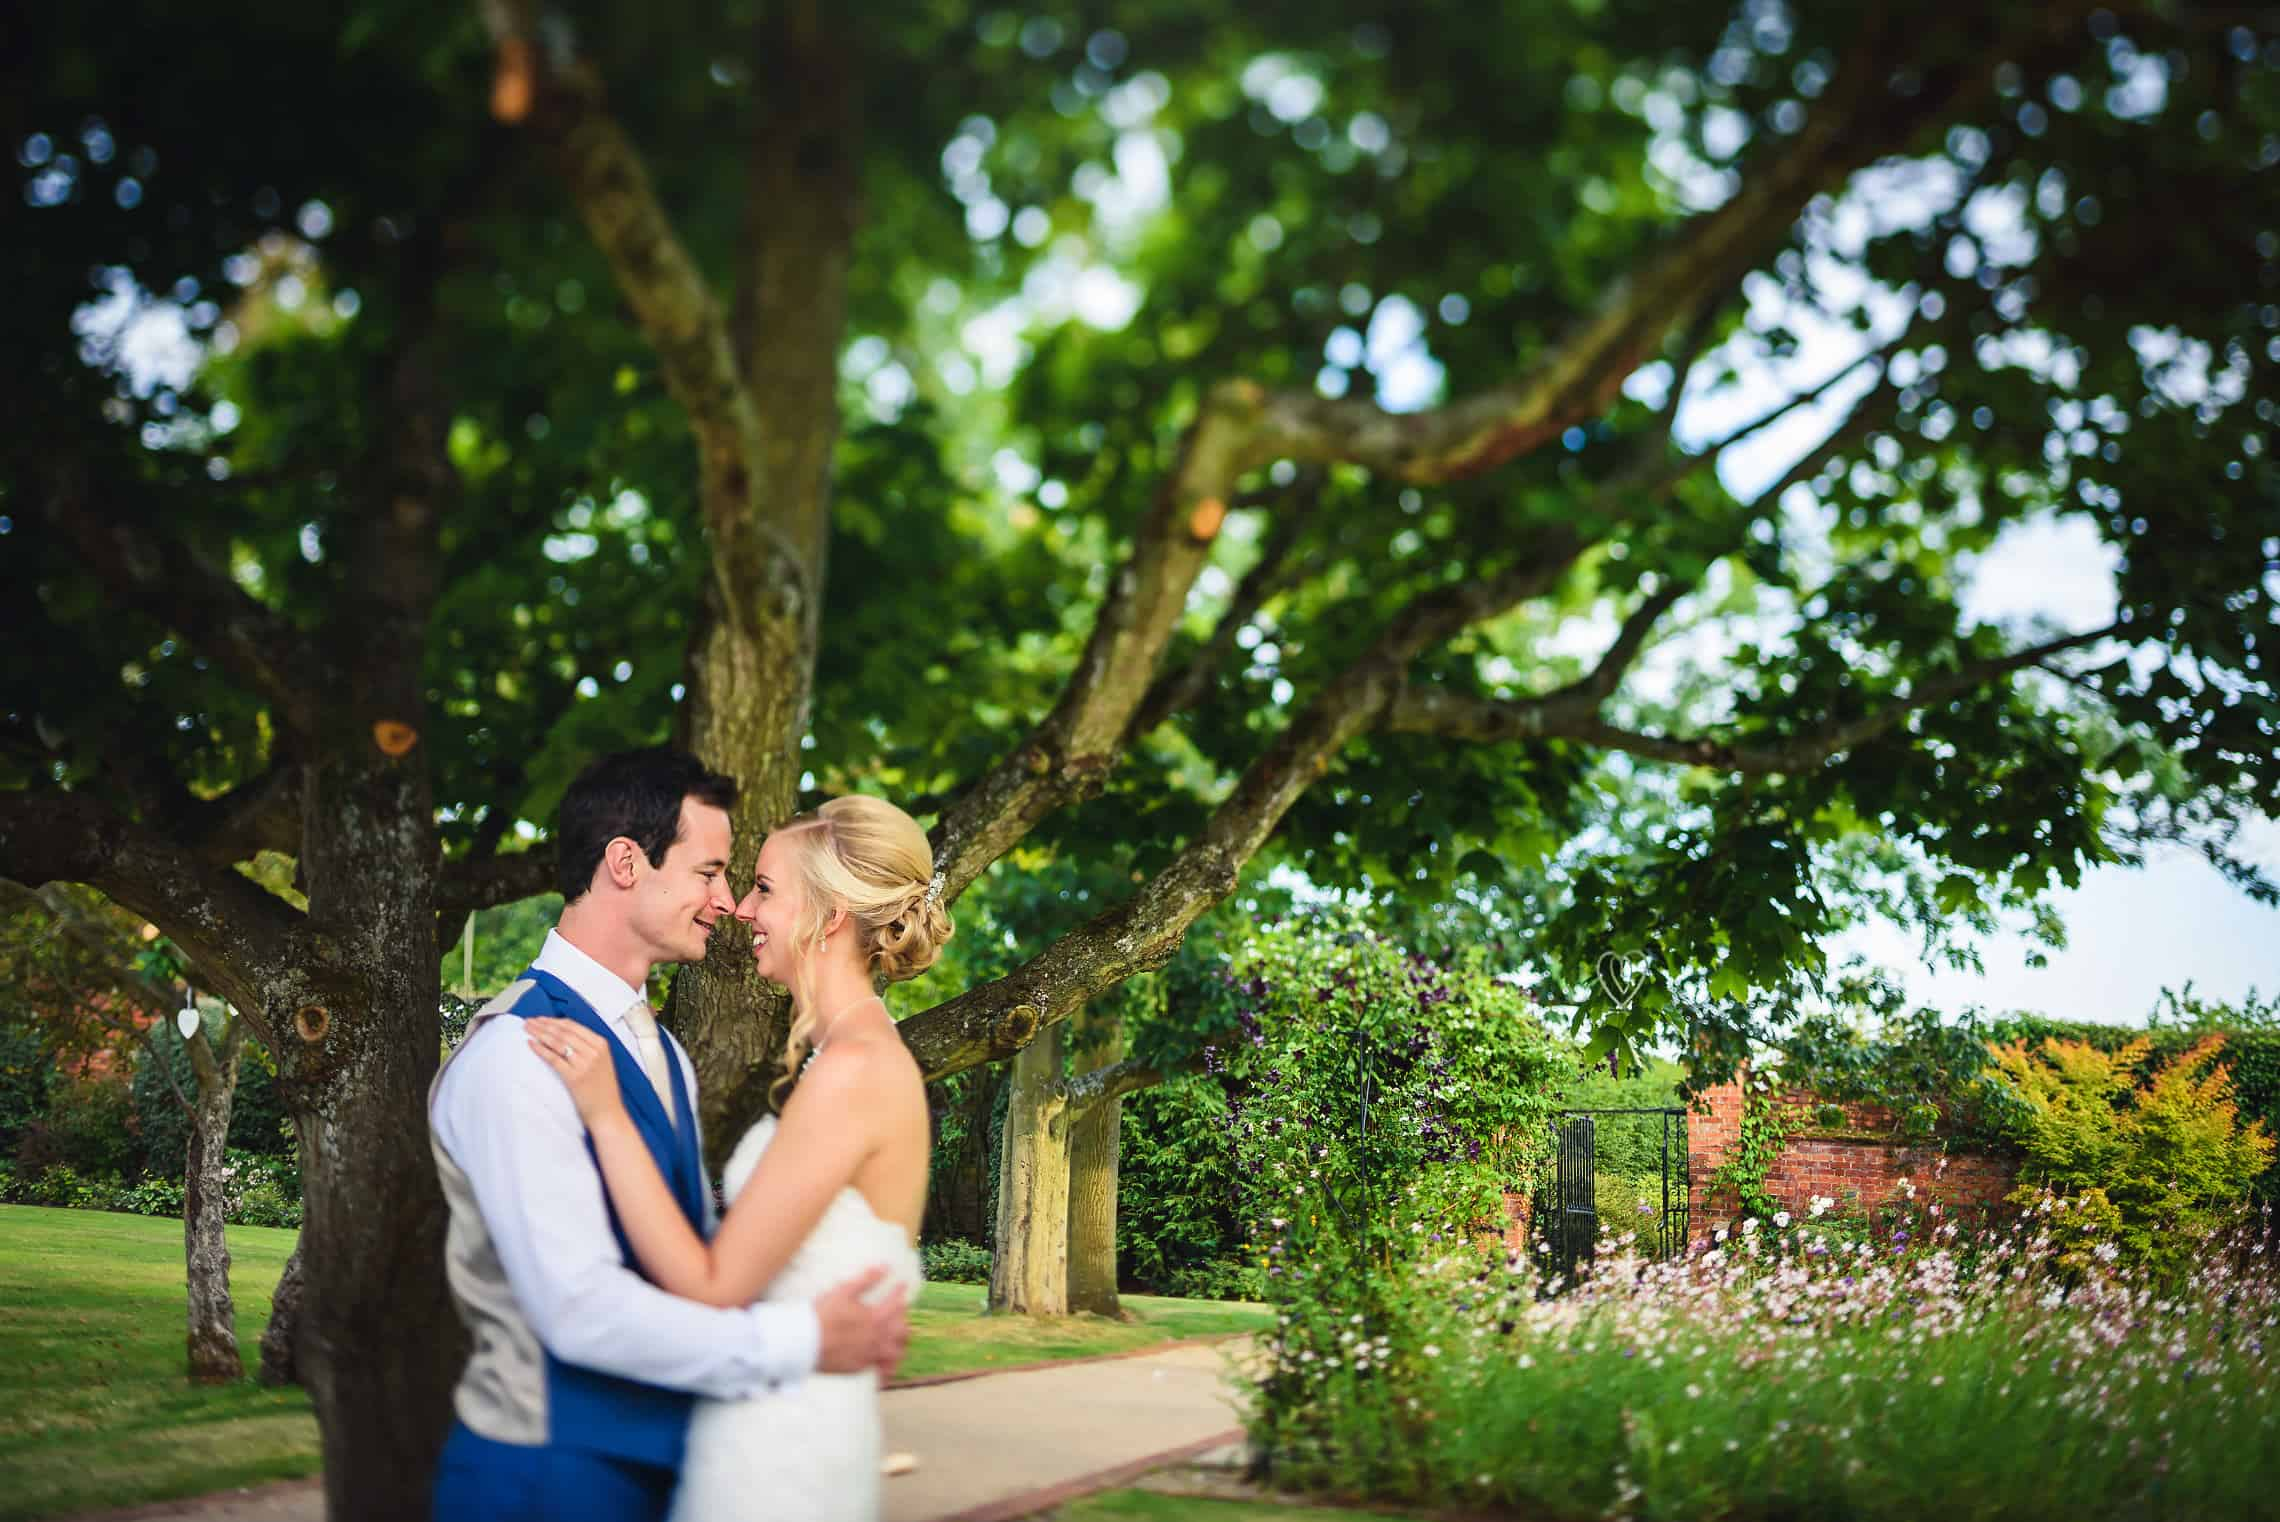 gaynes_park_wedding_lm_justin_bailey_photography_015